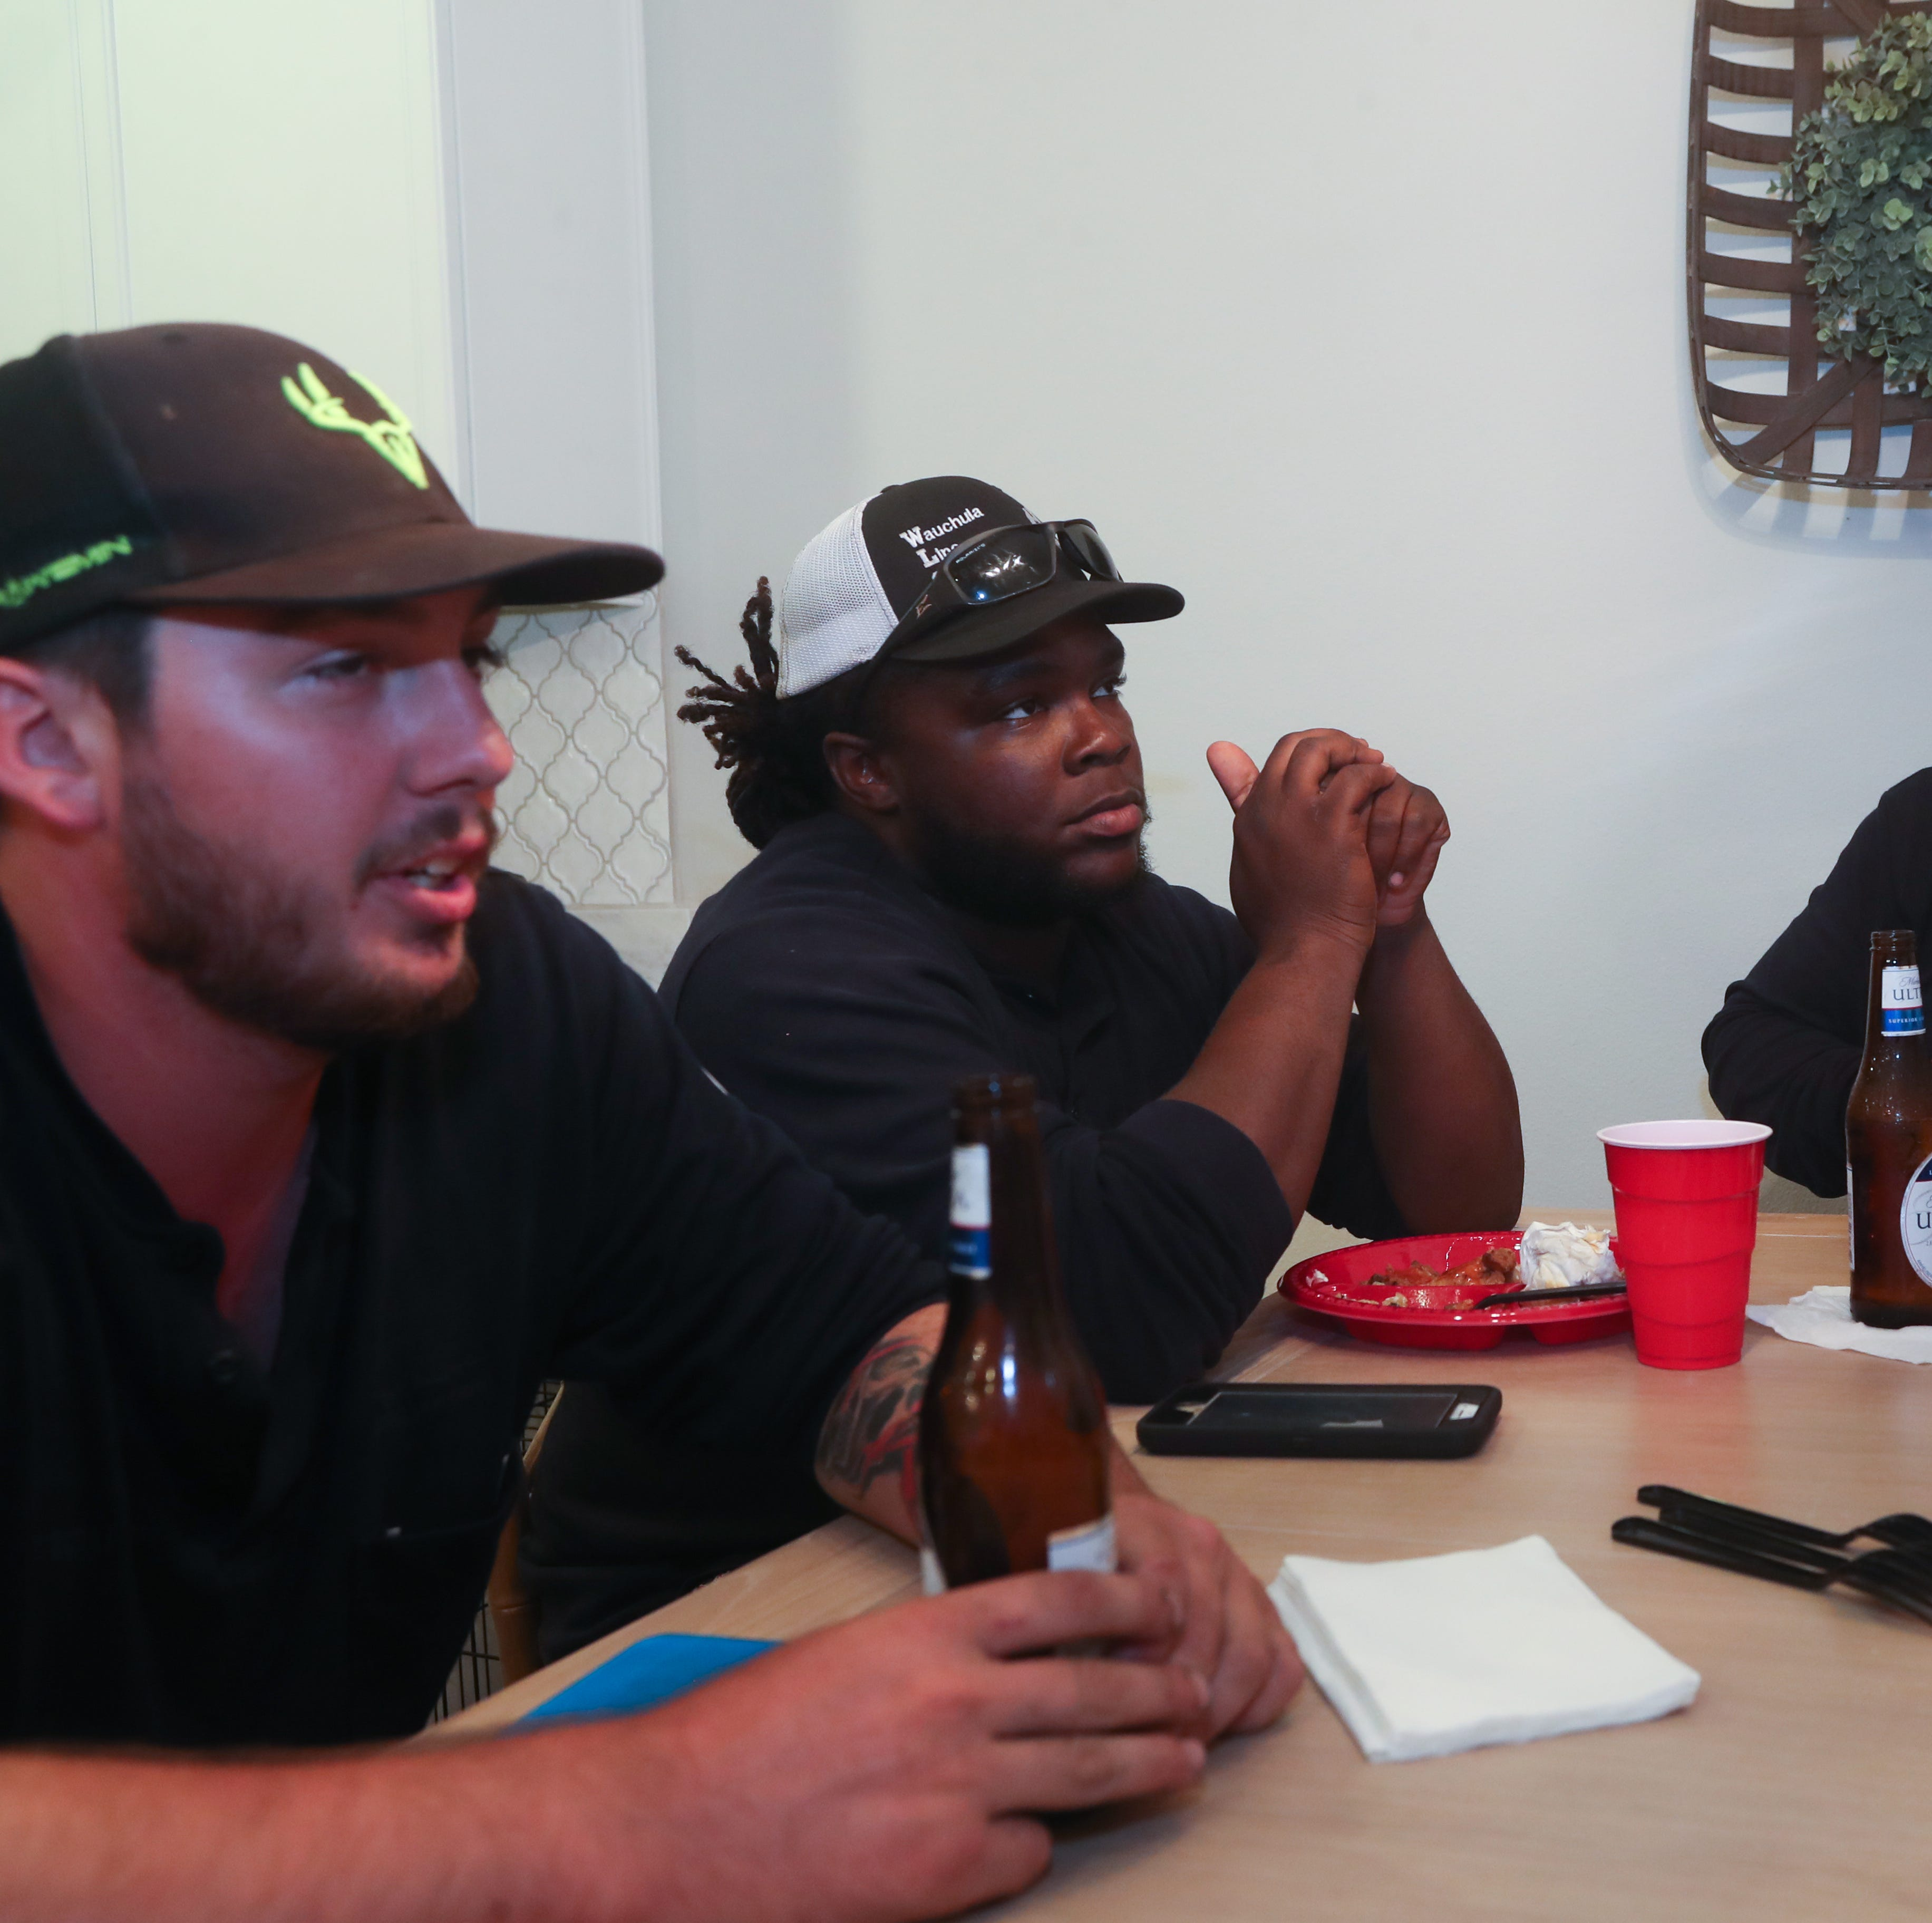 Dalton Garza, Debo McMillian and Jose Peña, apprentice linemen, eat dinner in the home of David and Ashley Bentley in the Ox Bottom Crest subdivision in Tallahassee, Fla. Thursday, Oct. 18, 2018.